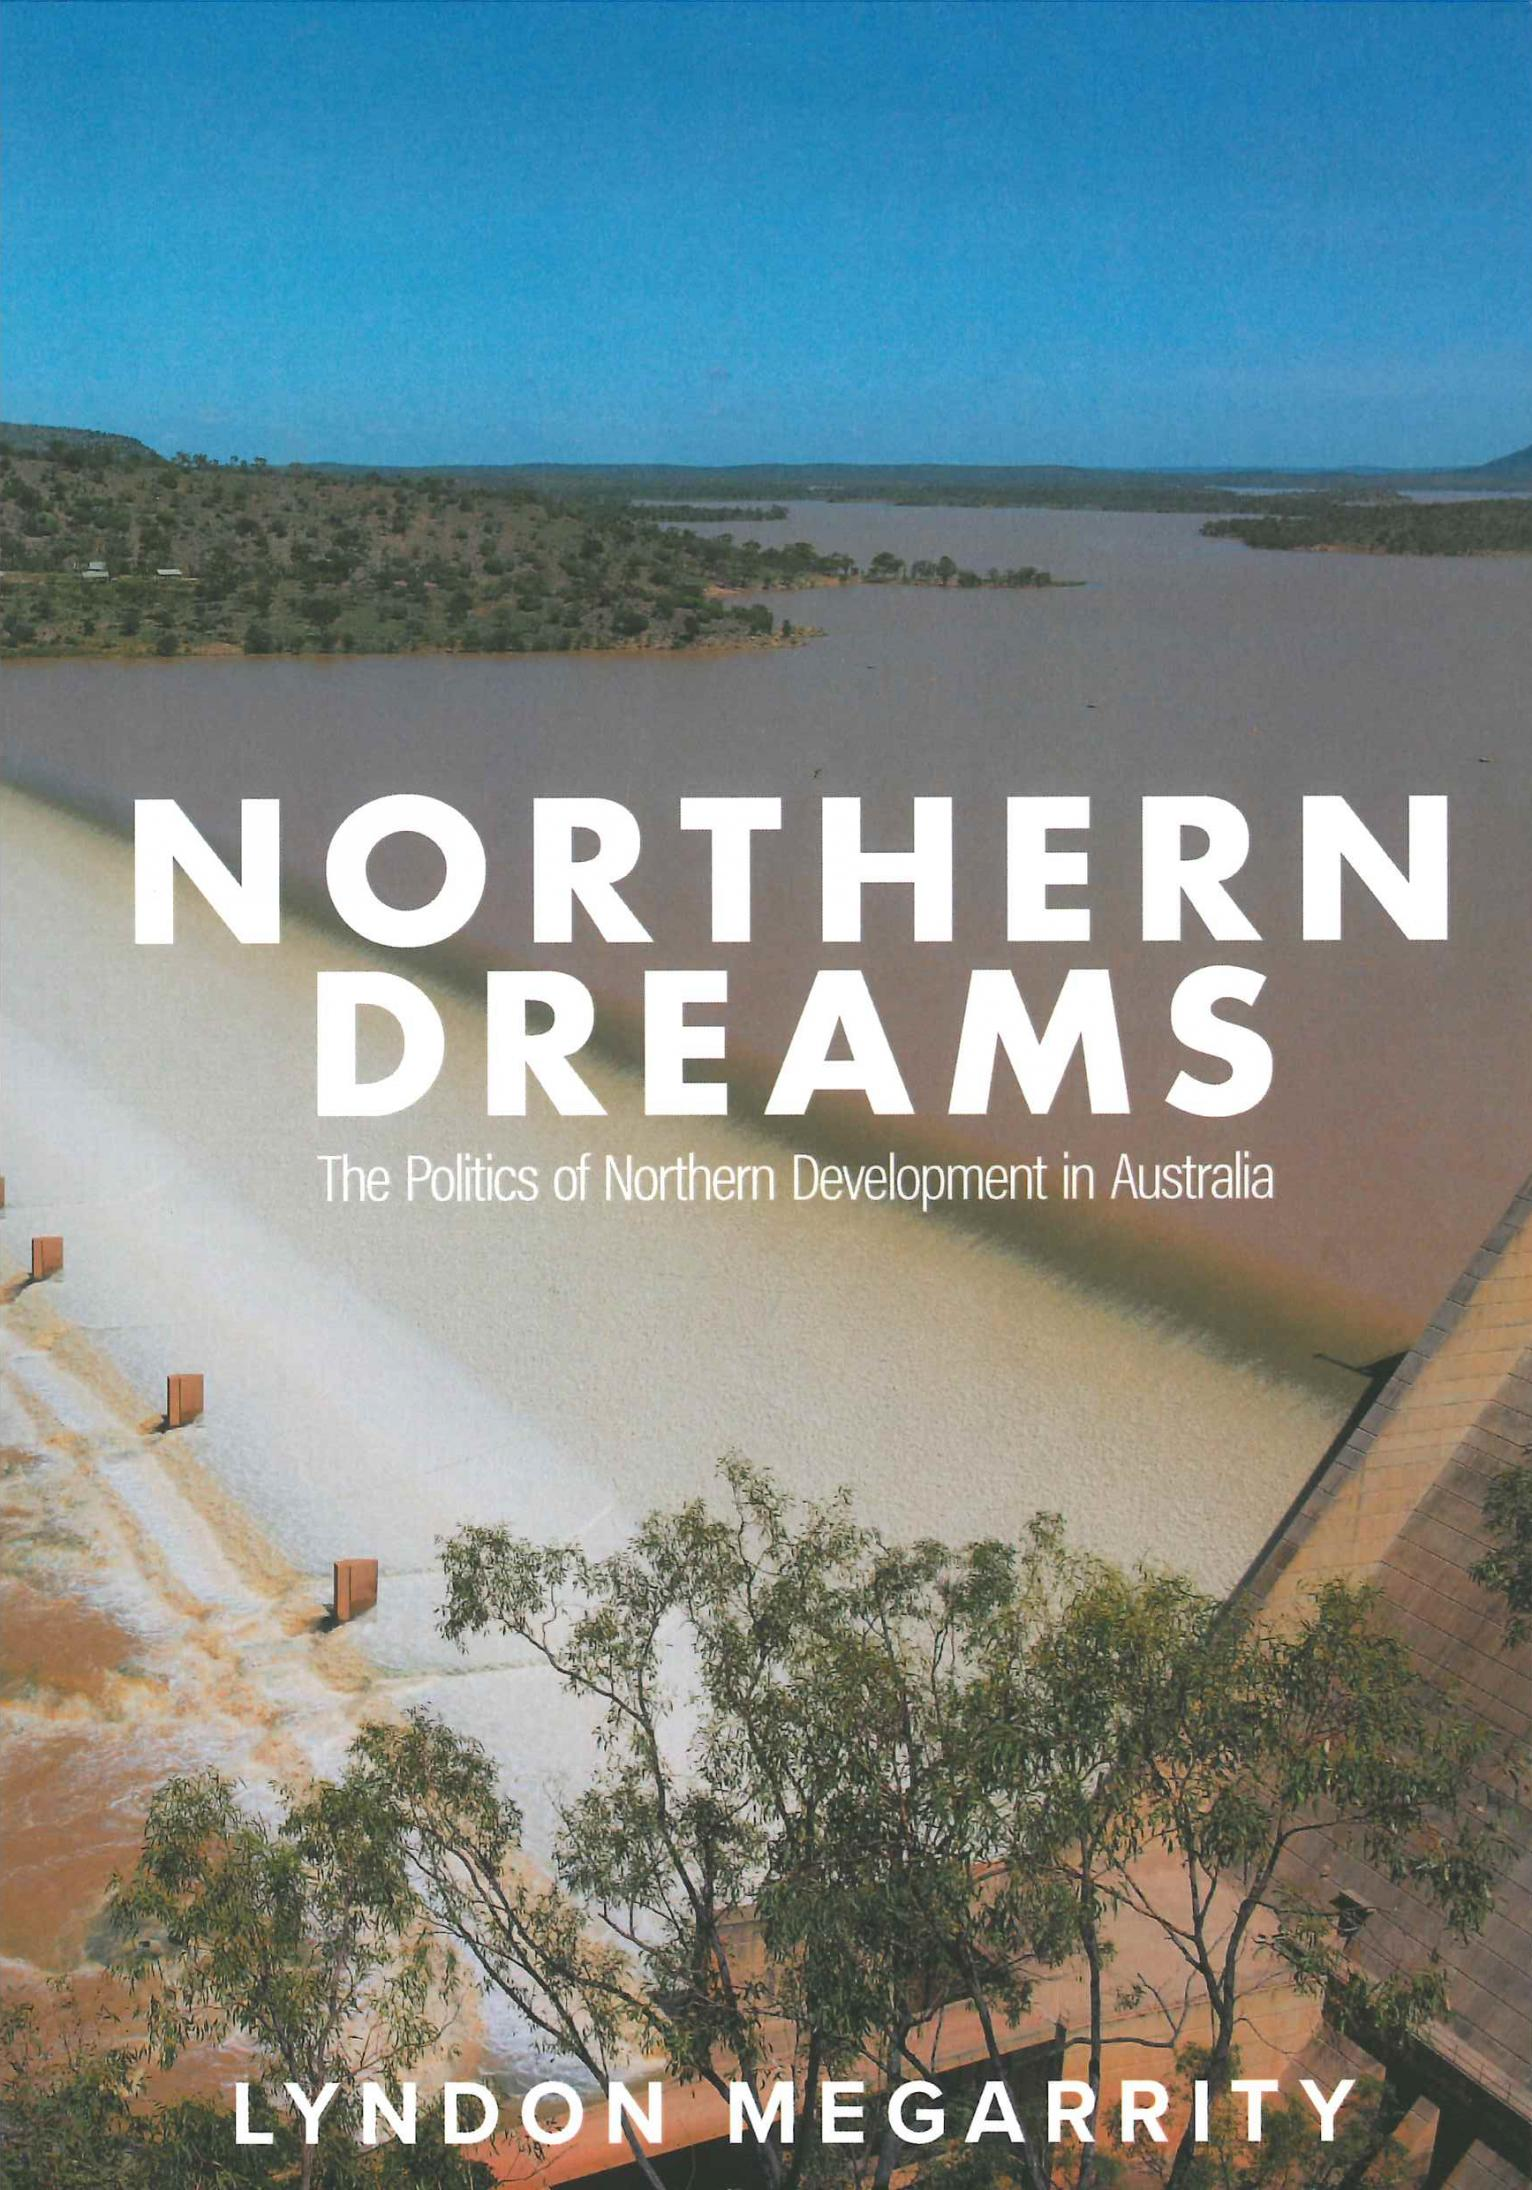 Book cover of Northern Dreams: The Politics of Northern Development in Australia